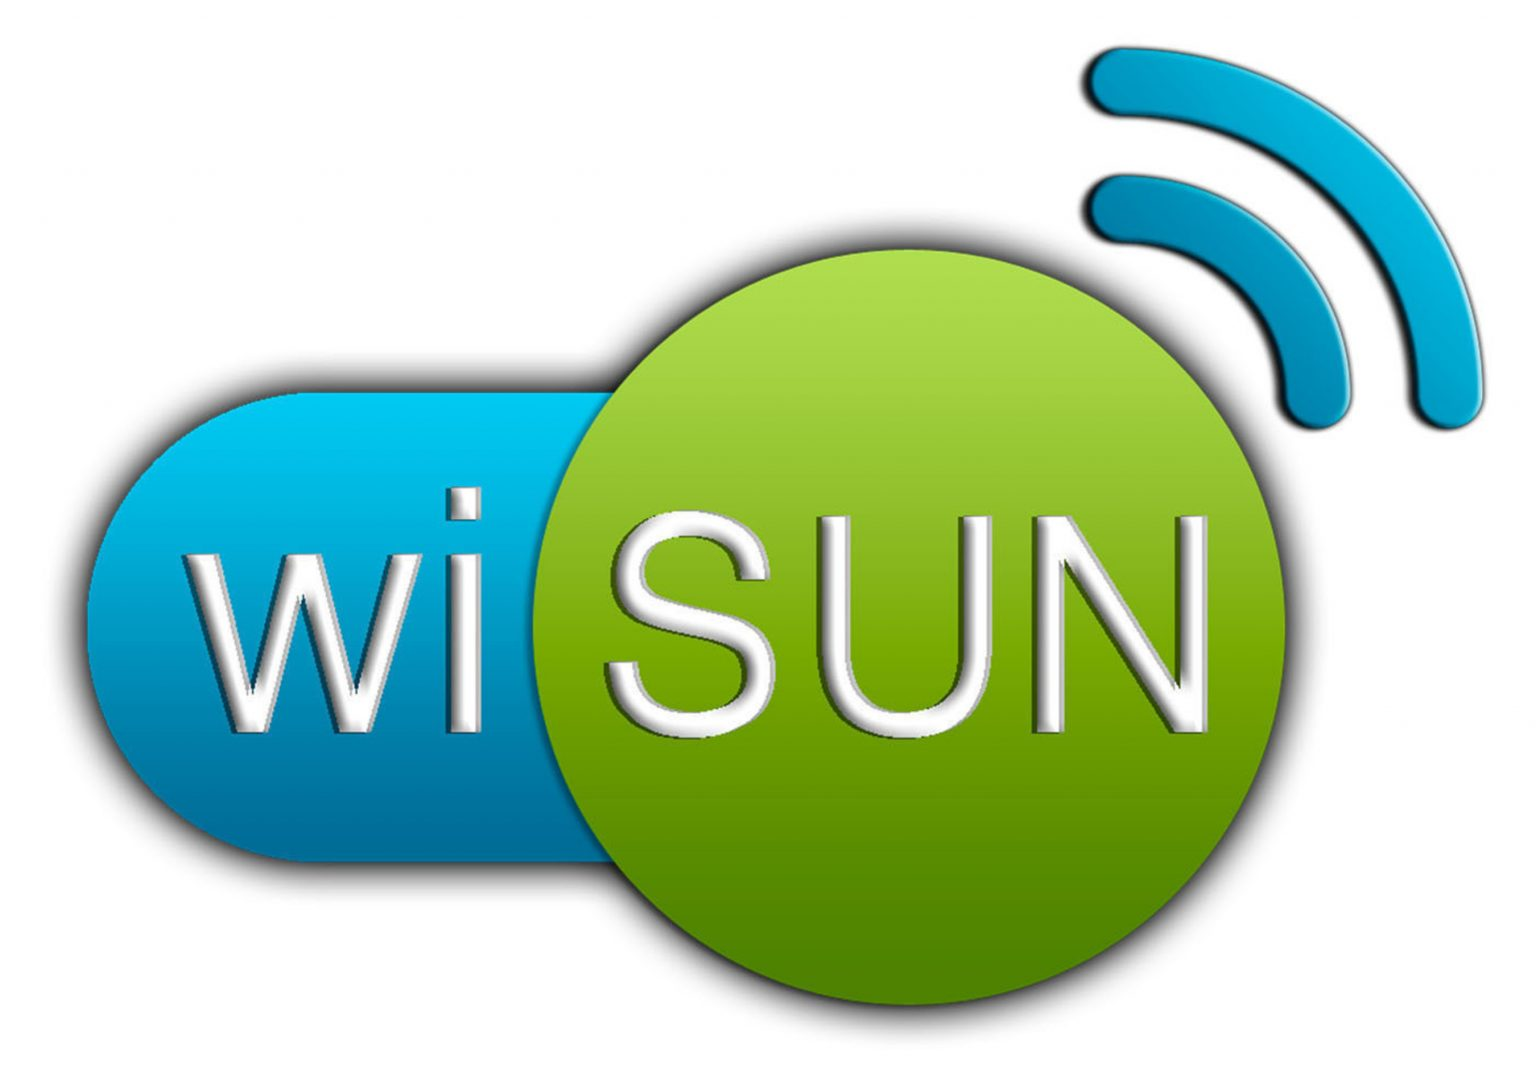 Wi-SUN for Smart Utility and Smart City